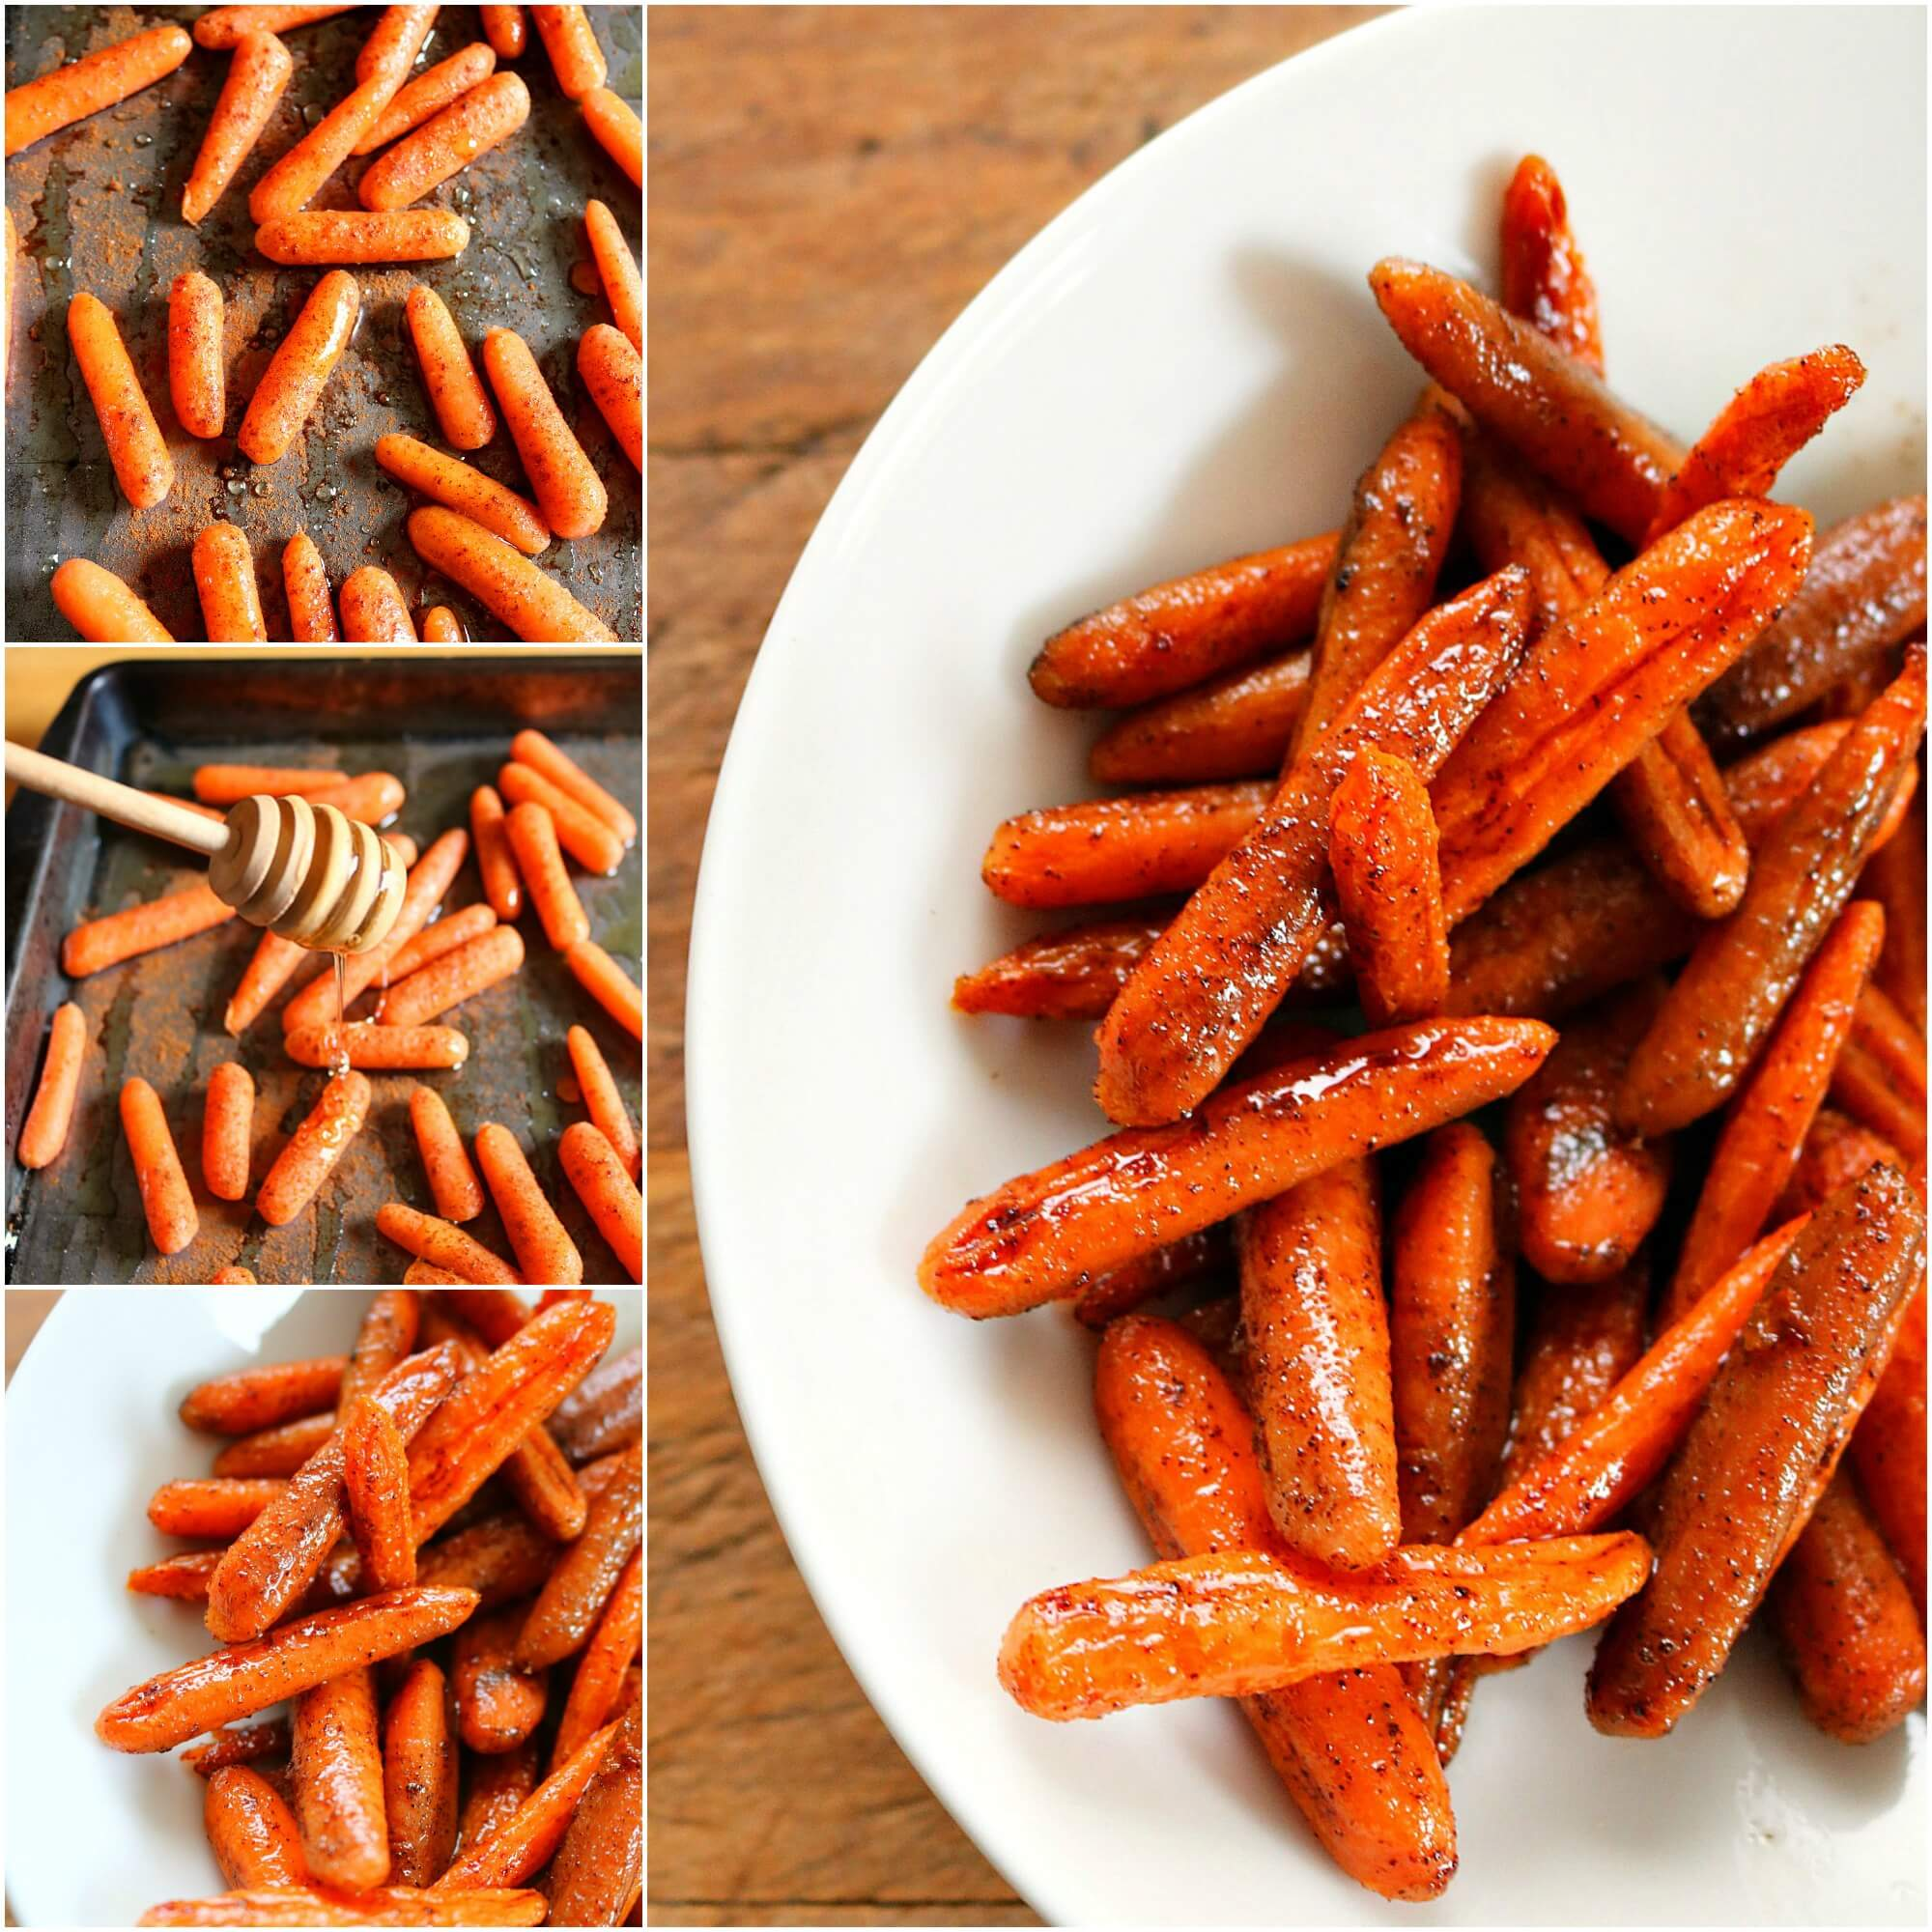 TOTS Family, Parenting, Kids, Food, Crafts, DIY and Travel carrots-fb-collage- Honey Glazed Oven Roasted Carrots Recipe Food Miscellaneous Recipes Side Dish TOTS Family Uncategorized  Side Dish Oven Roasted Carrots Honey Glazed Carrots